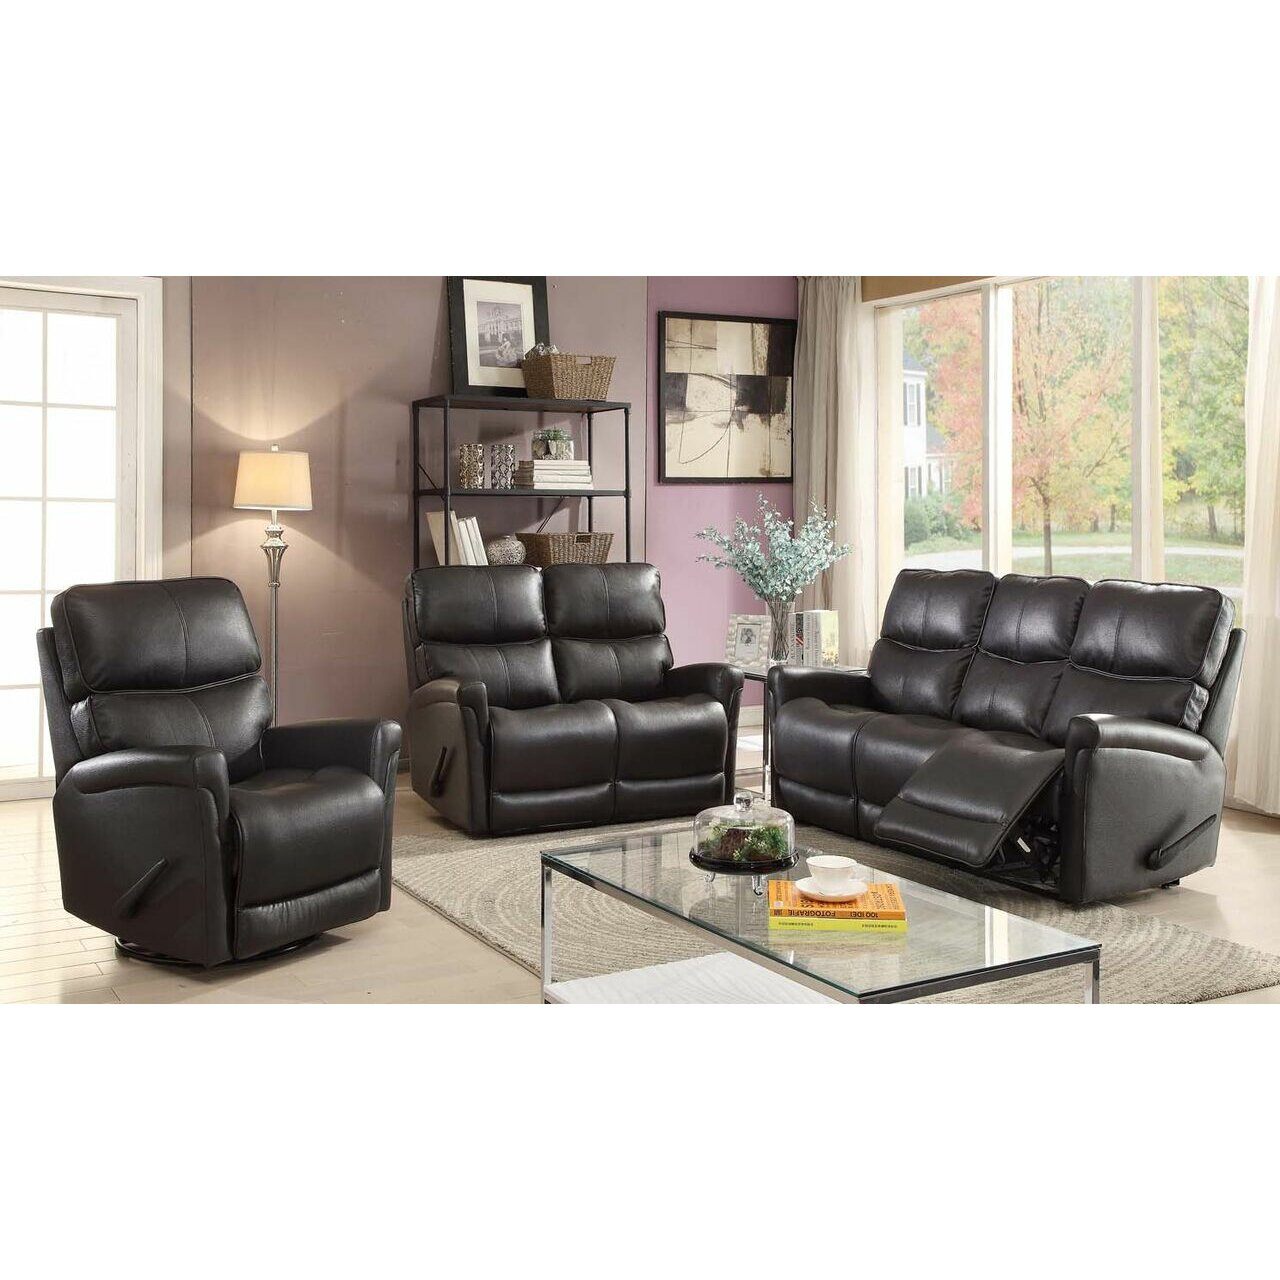 Easy living cologne 3 piece reclining living room set for Living room 3 piece sets